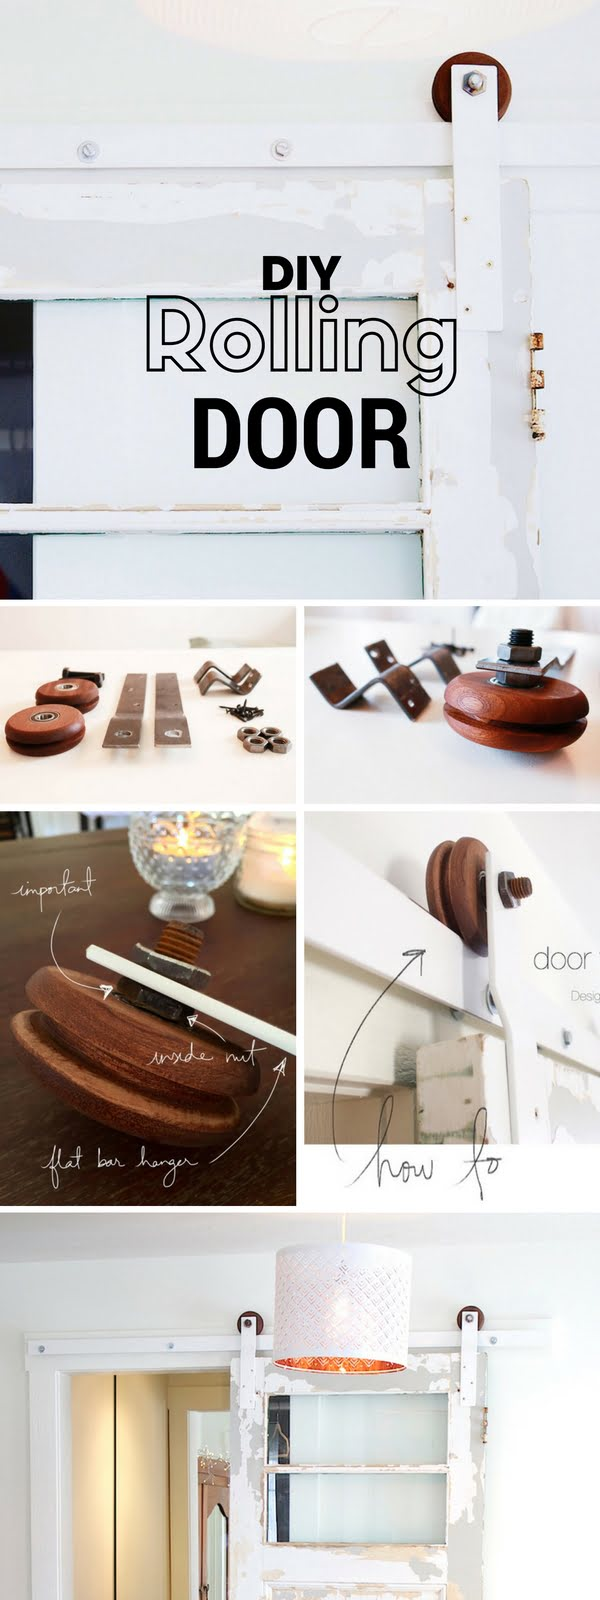 Check out the tutorial: #DIY Rolling Door